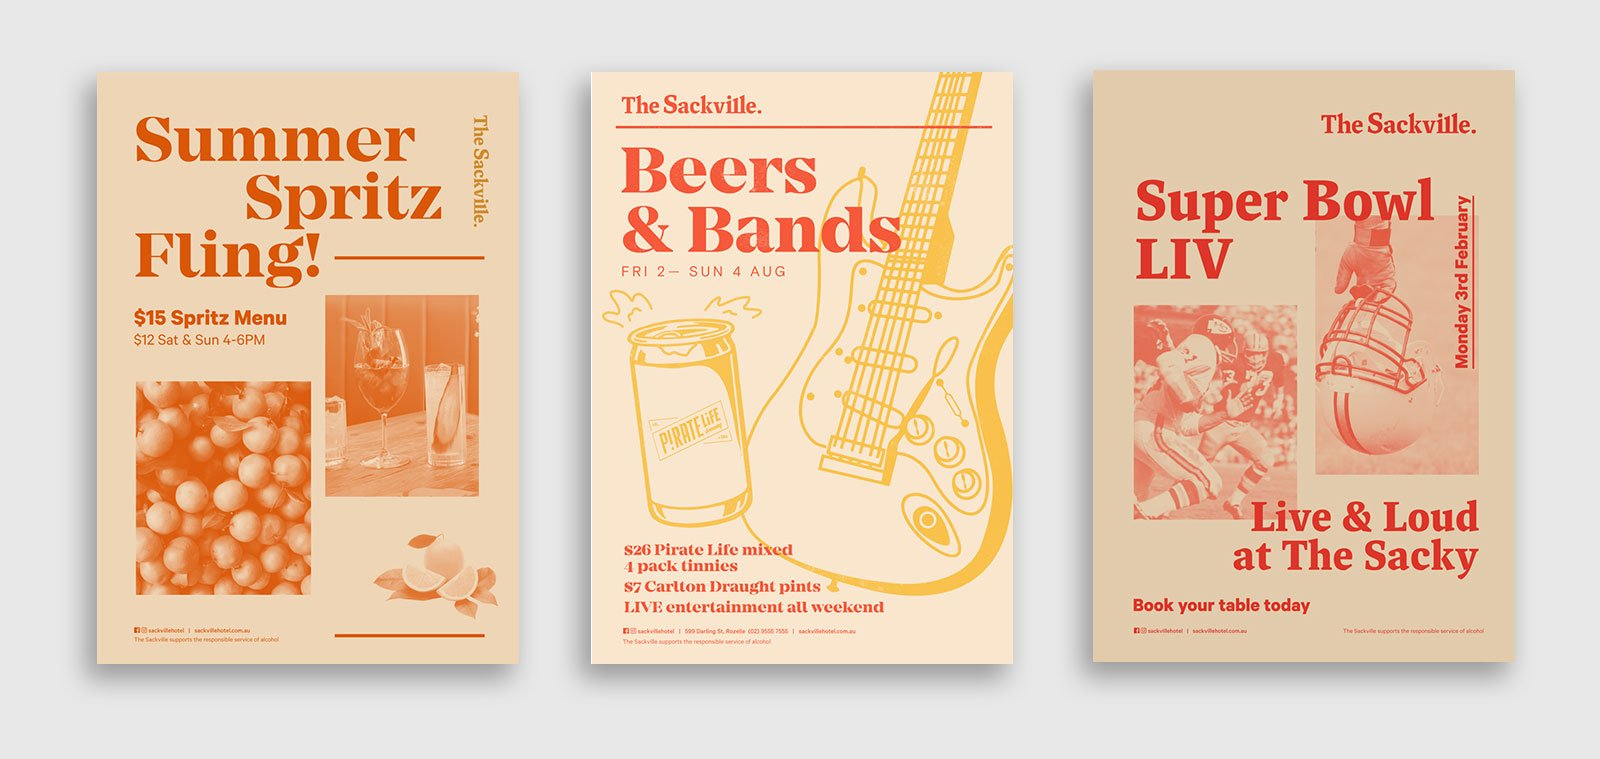 three poster designs for events at the sackville